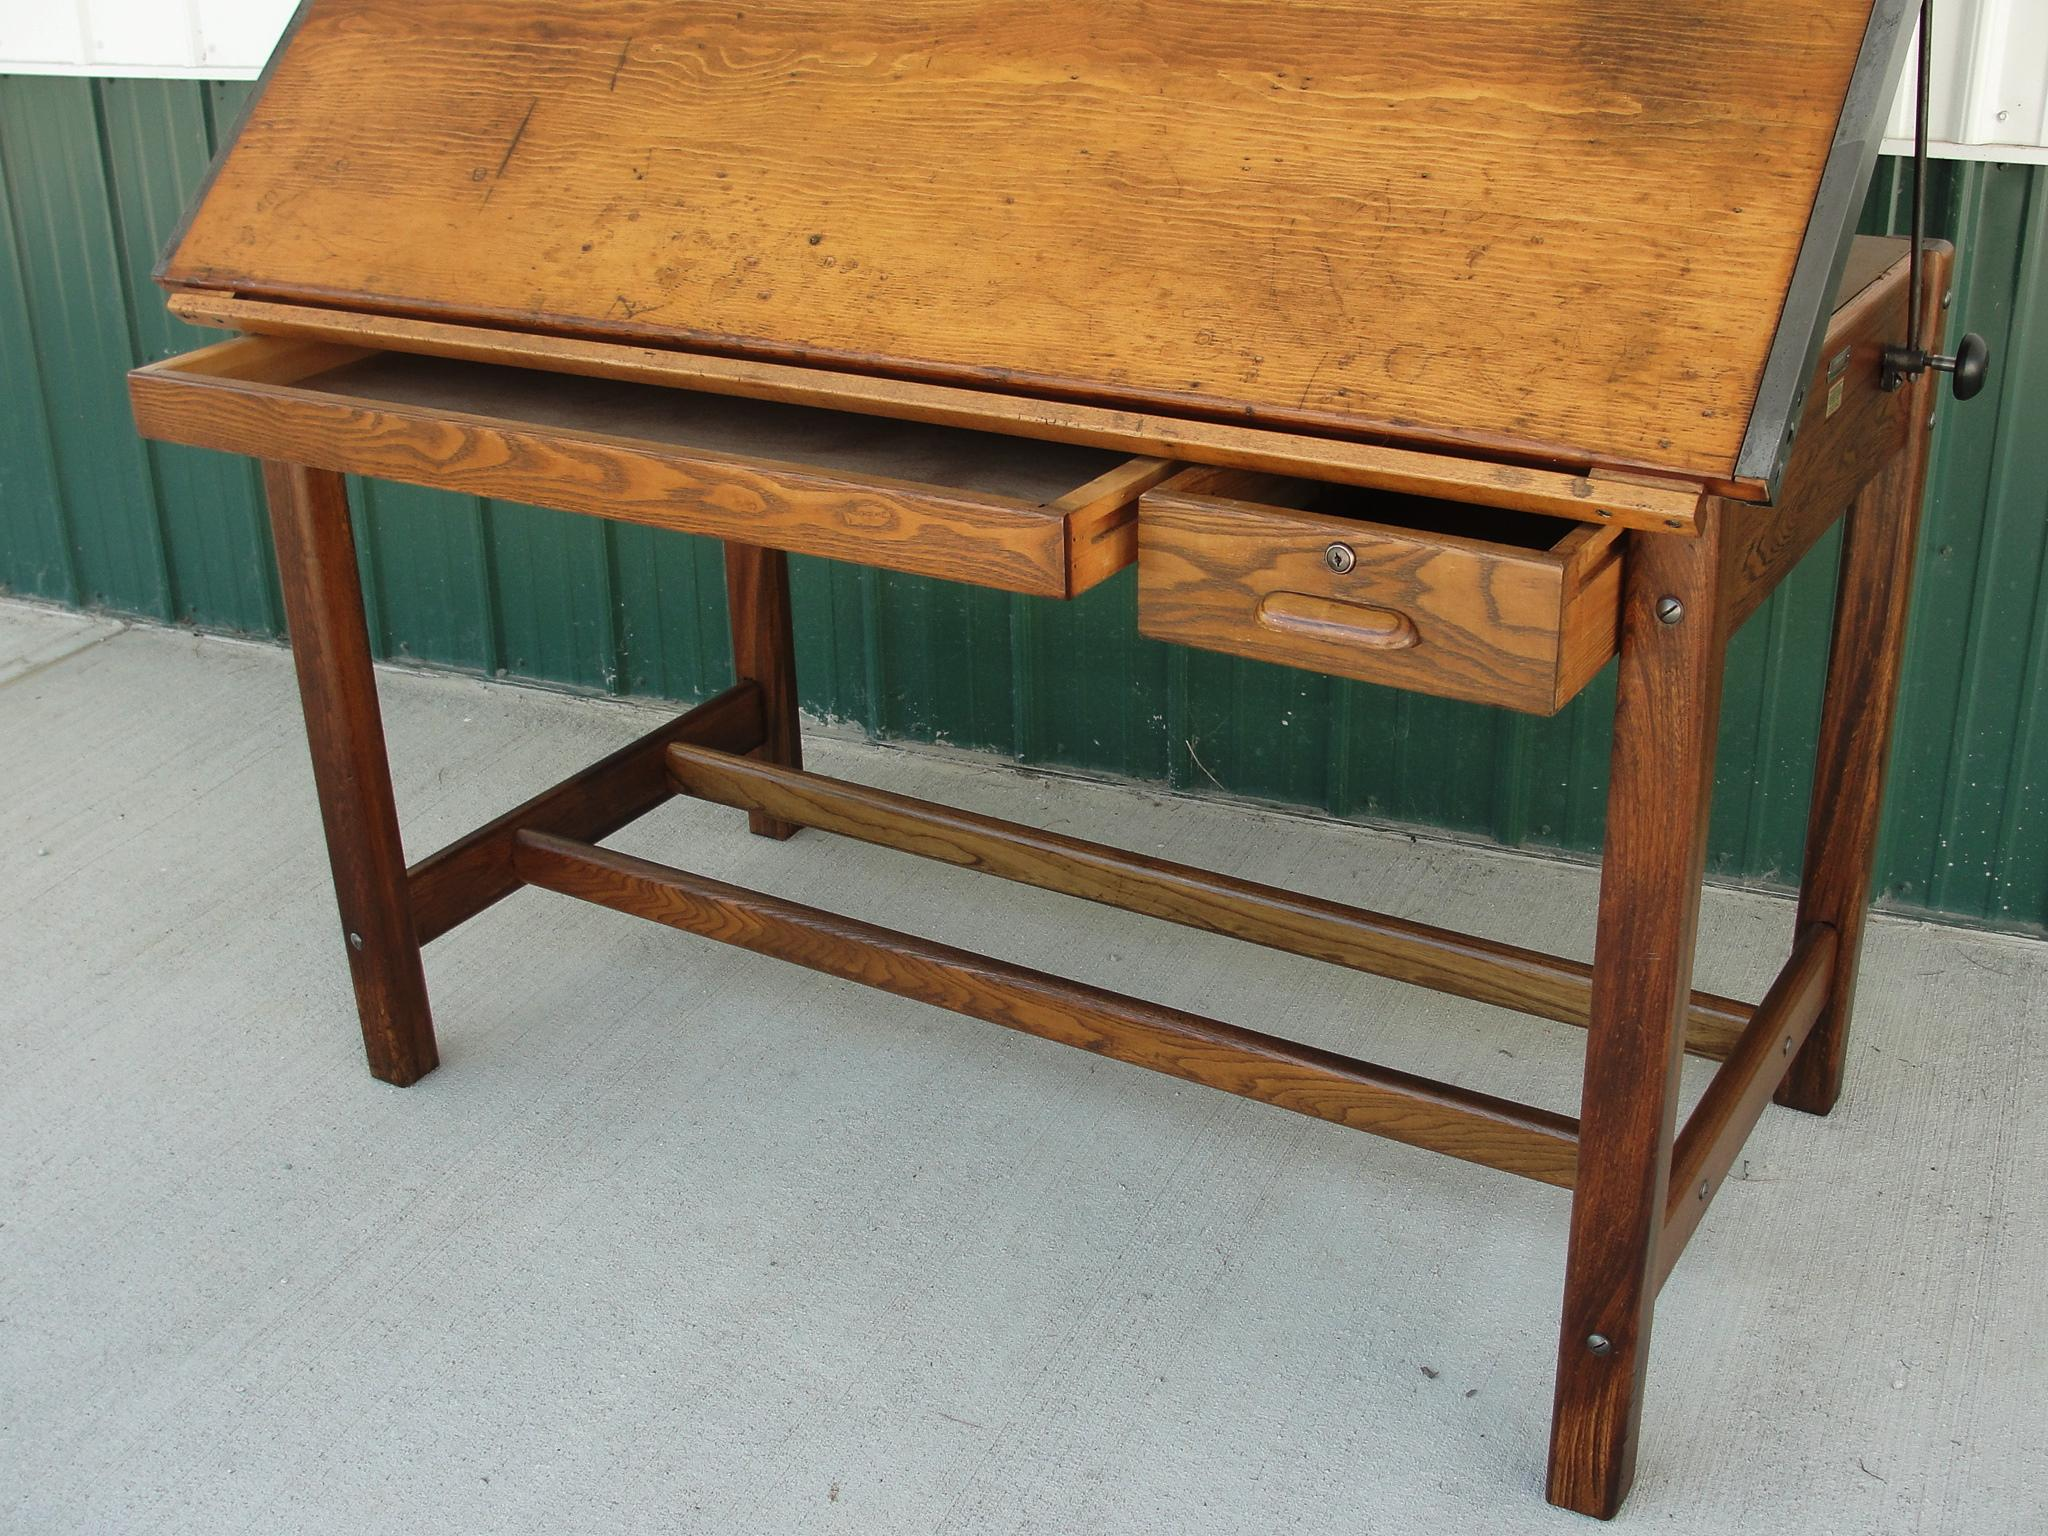 Antique drafting table with drawers - Roll Over Large Image To Magnify Click Large Image To Zoom